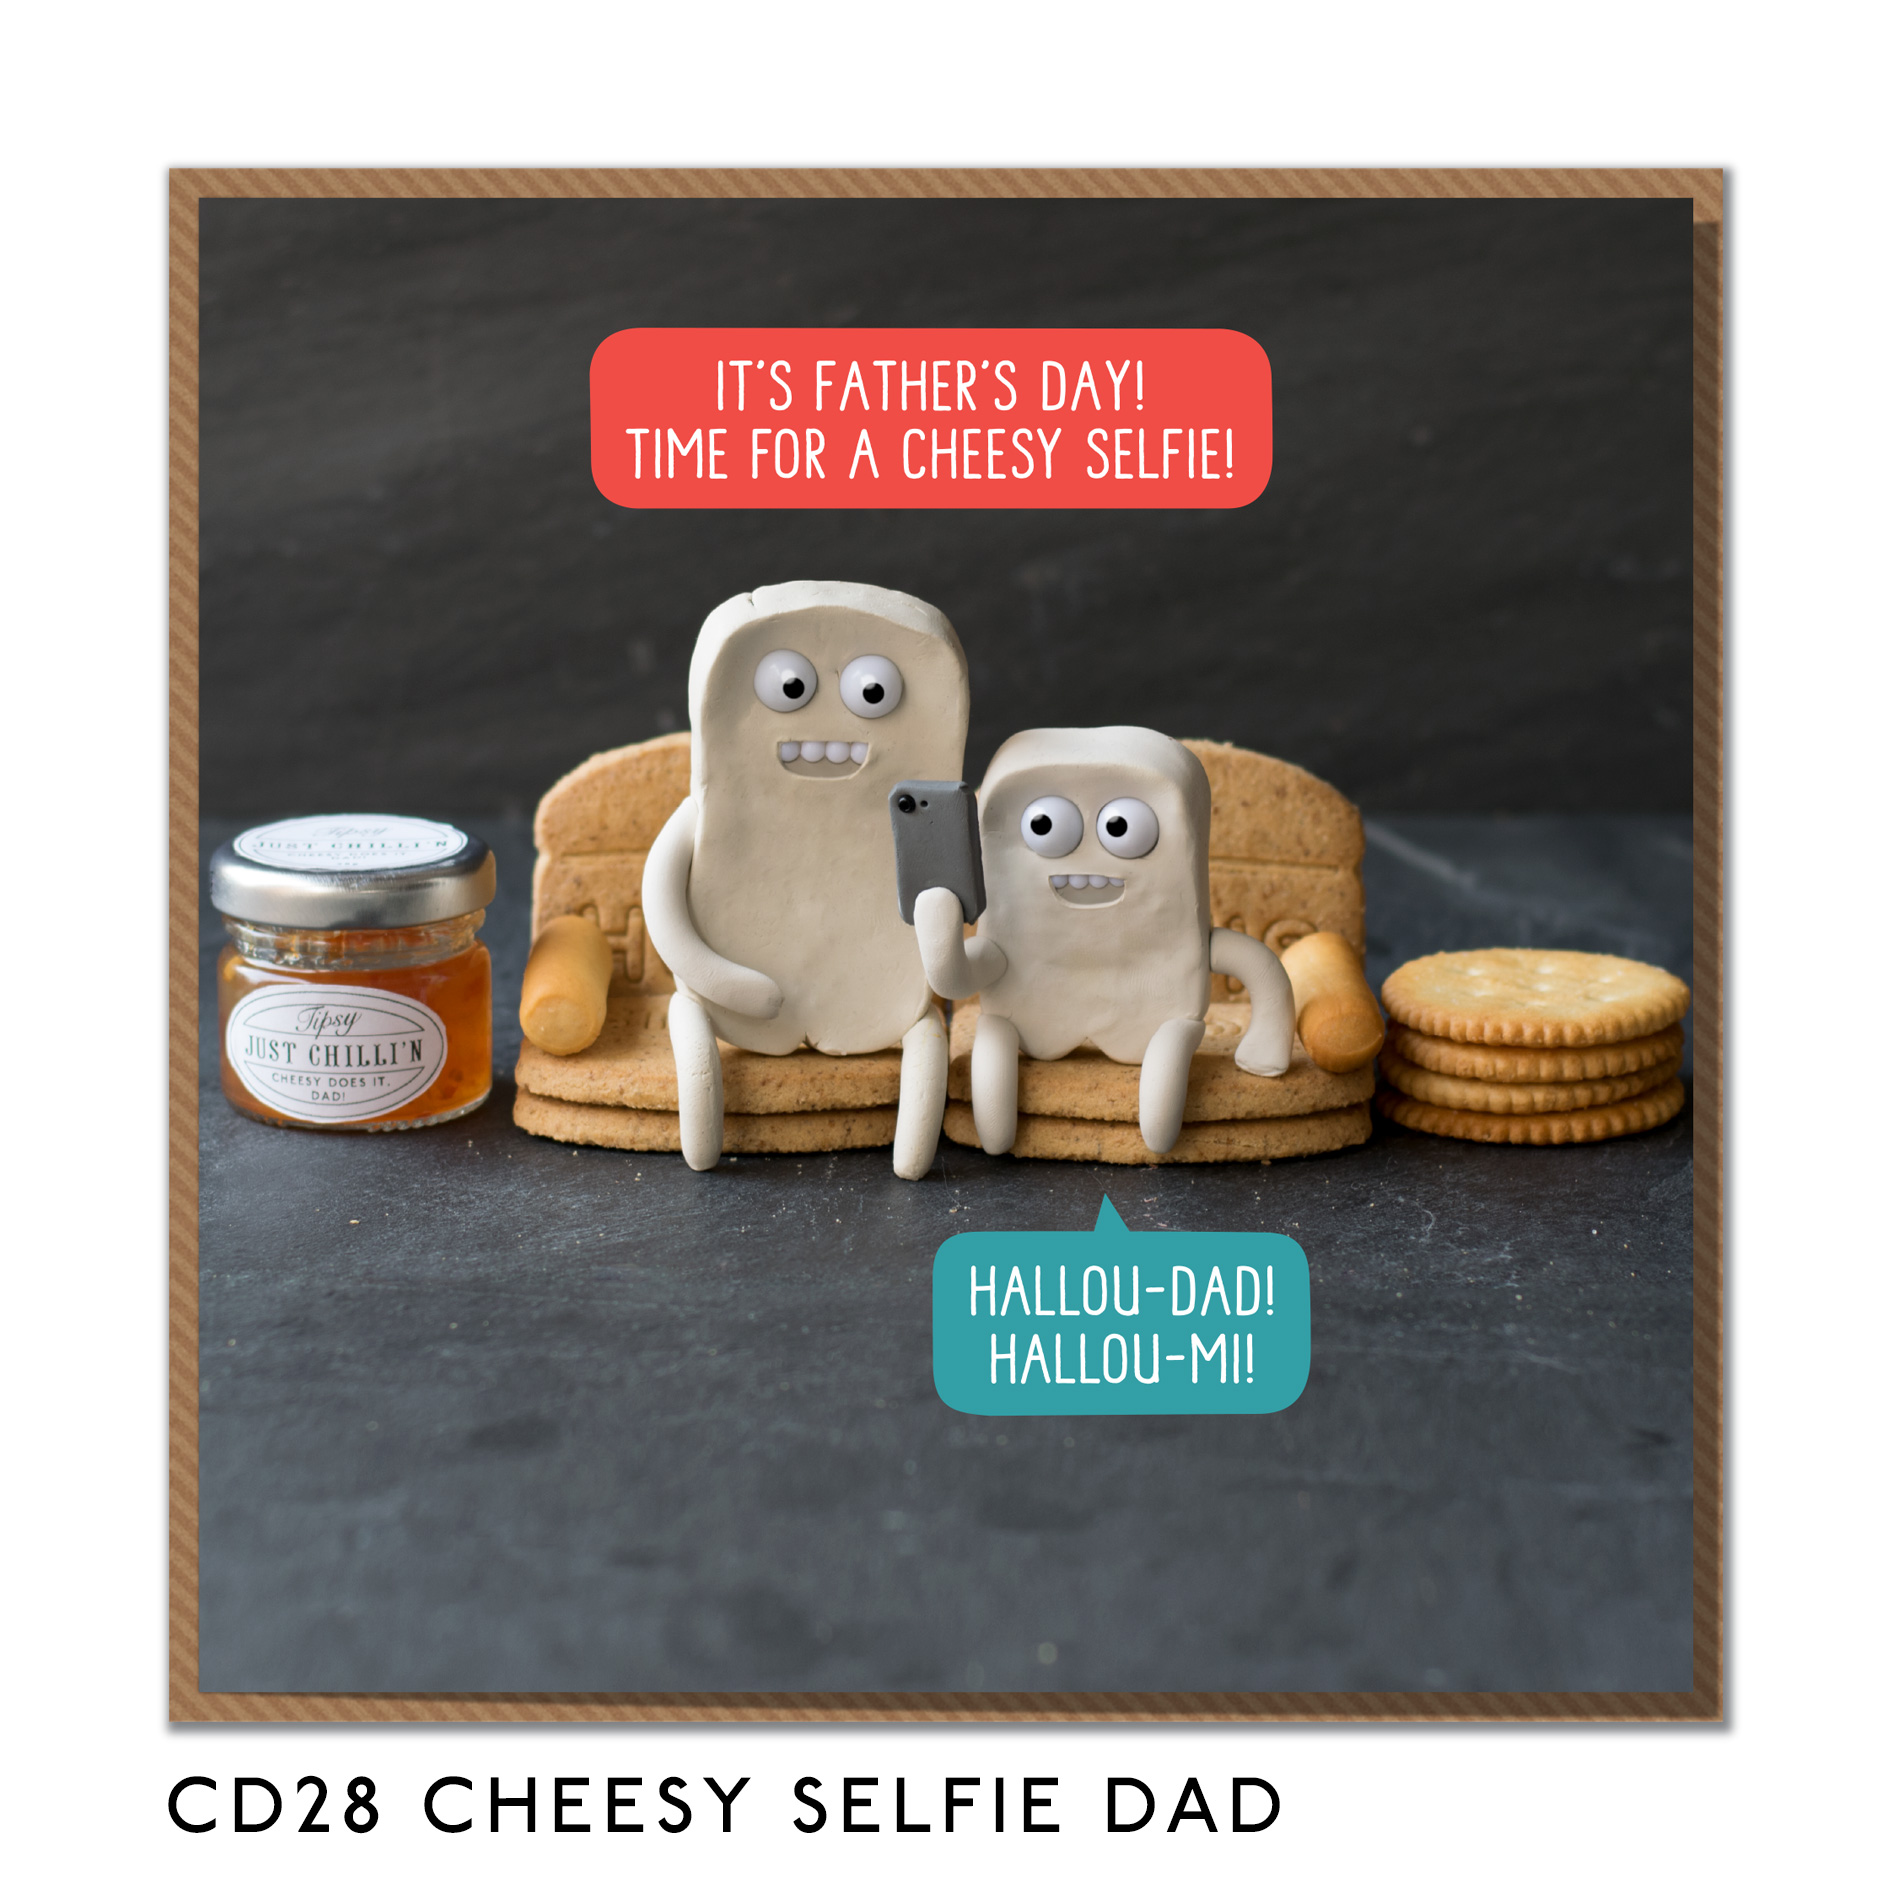 CD28-CHEESY-SELFIE-DAD.jpg